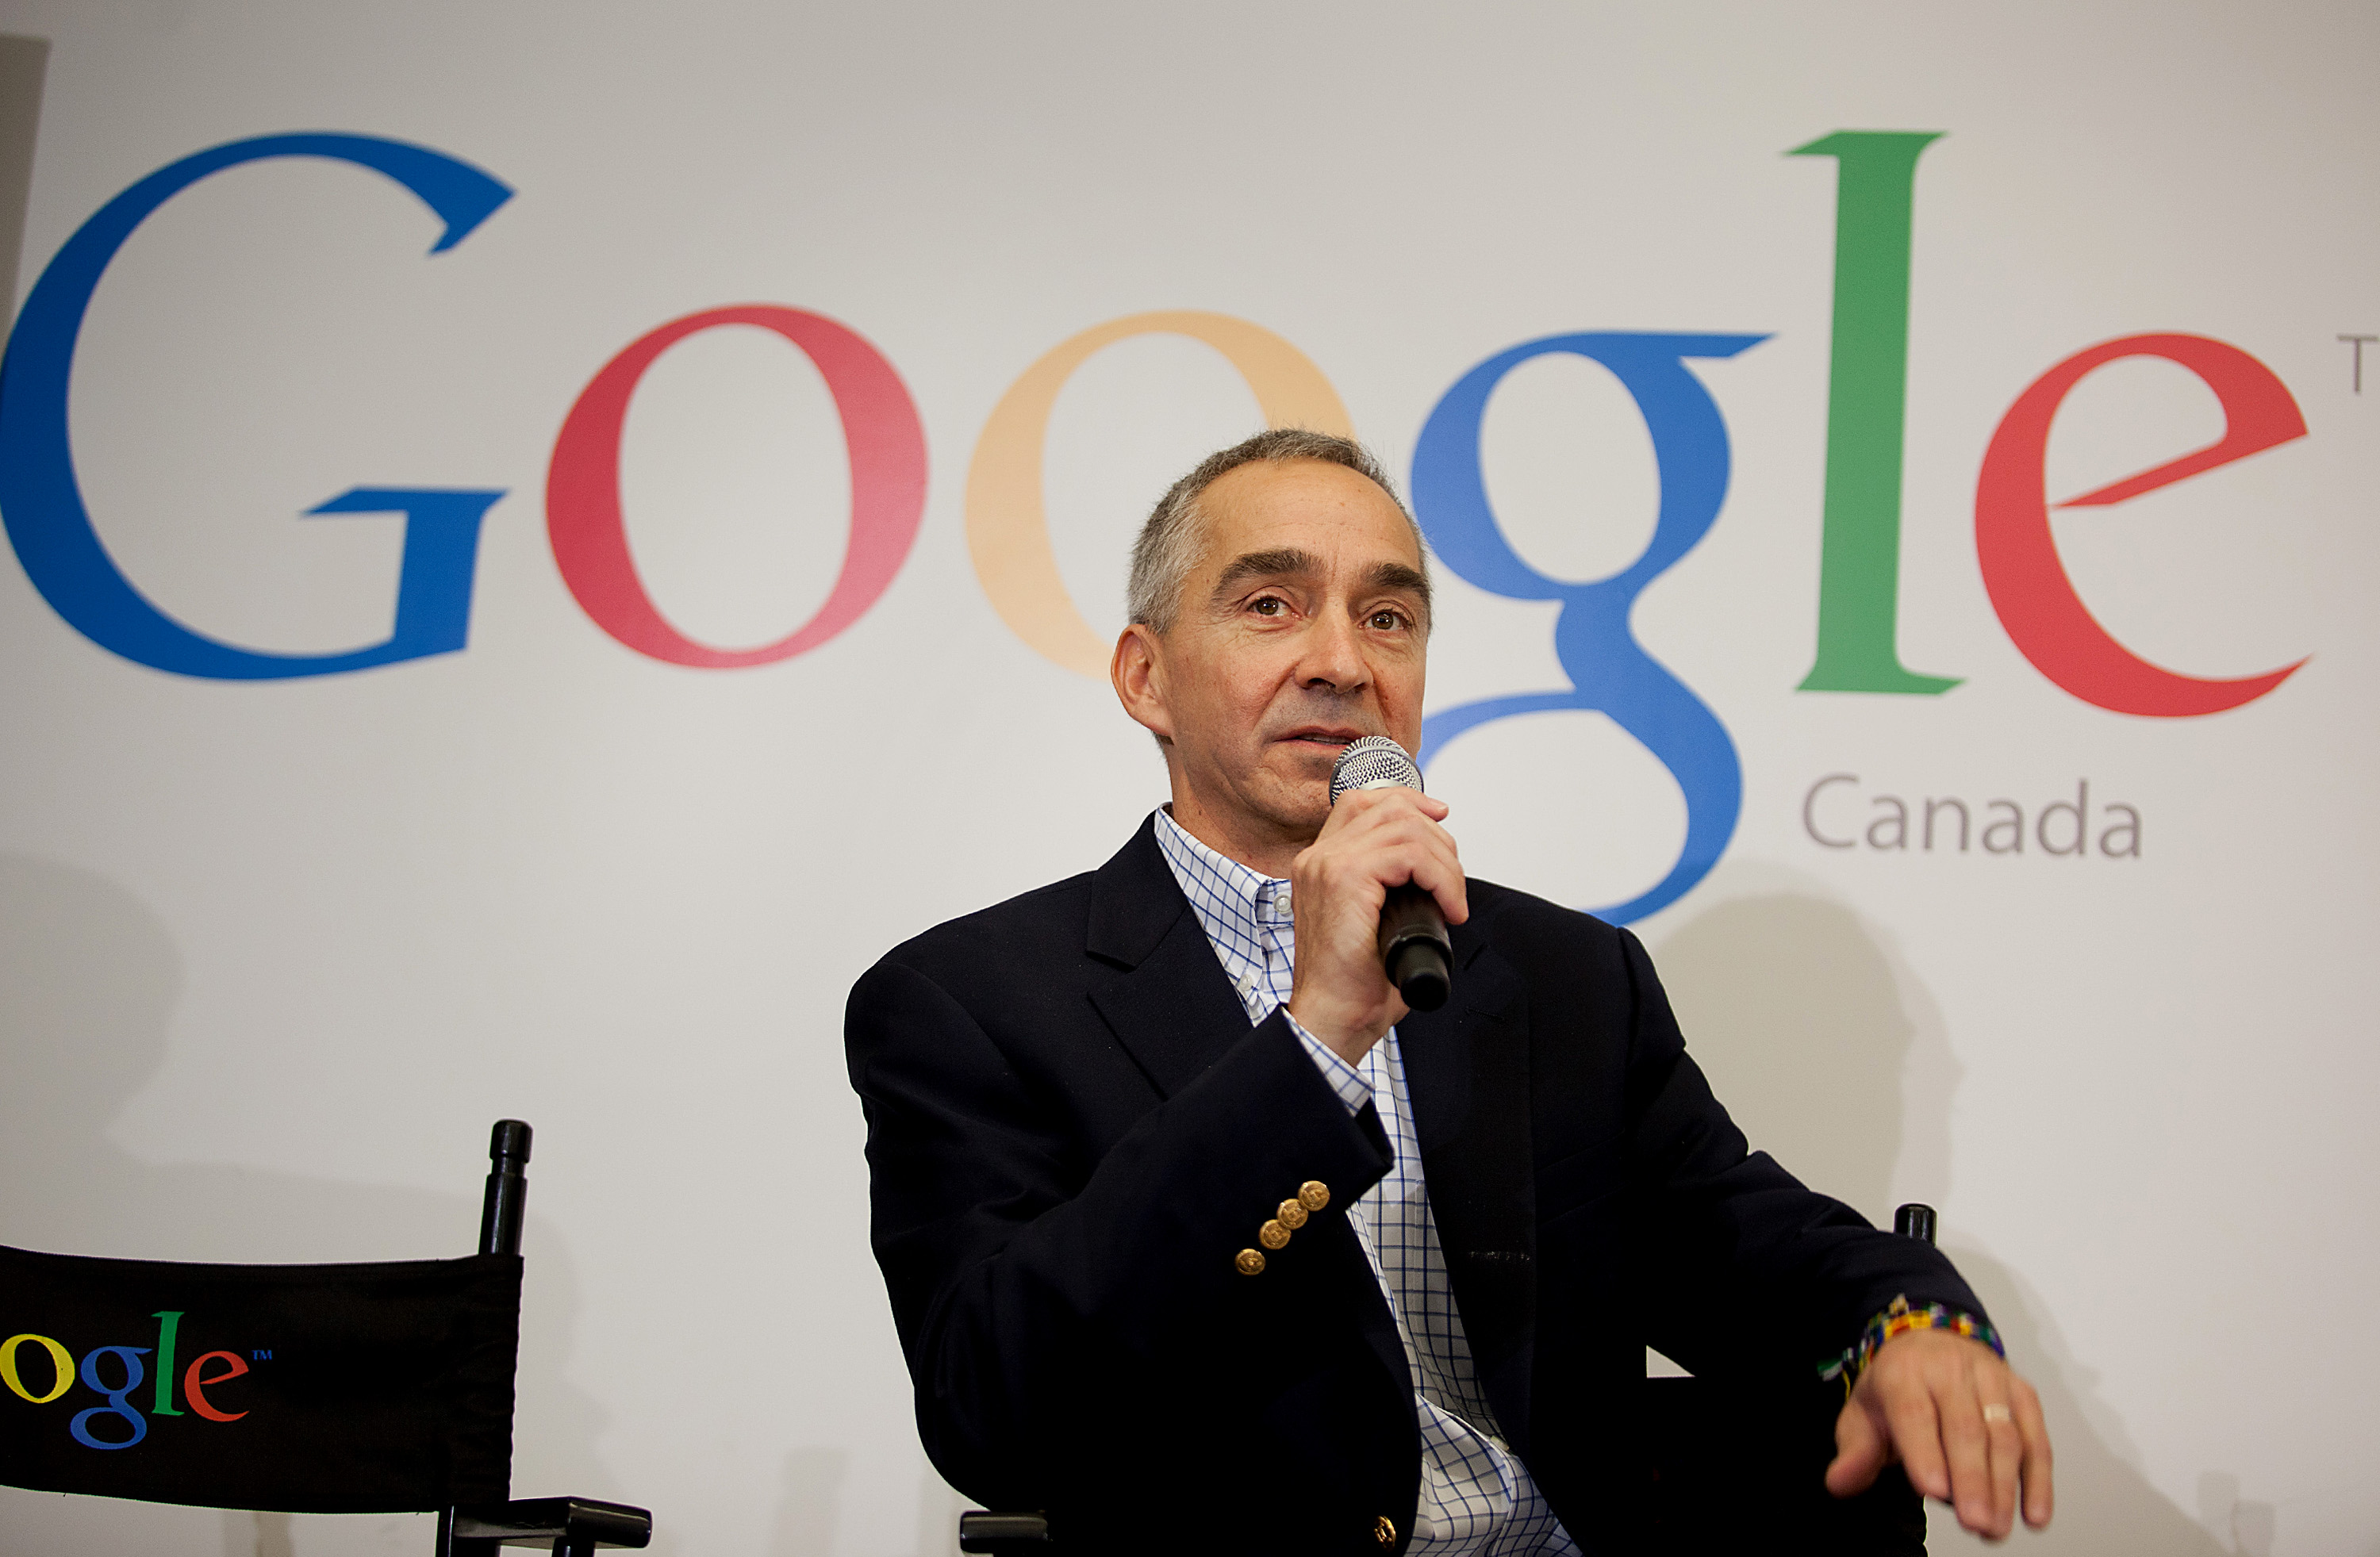 Patrick Pichette, Chief Financial Officer of Google Inc., speaks to the press during a media tour for the grand opening of Google Inc.'s new office in Toronto on Nov. 13, 2012.